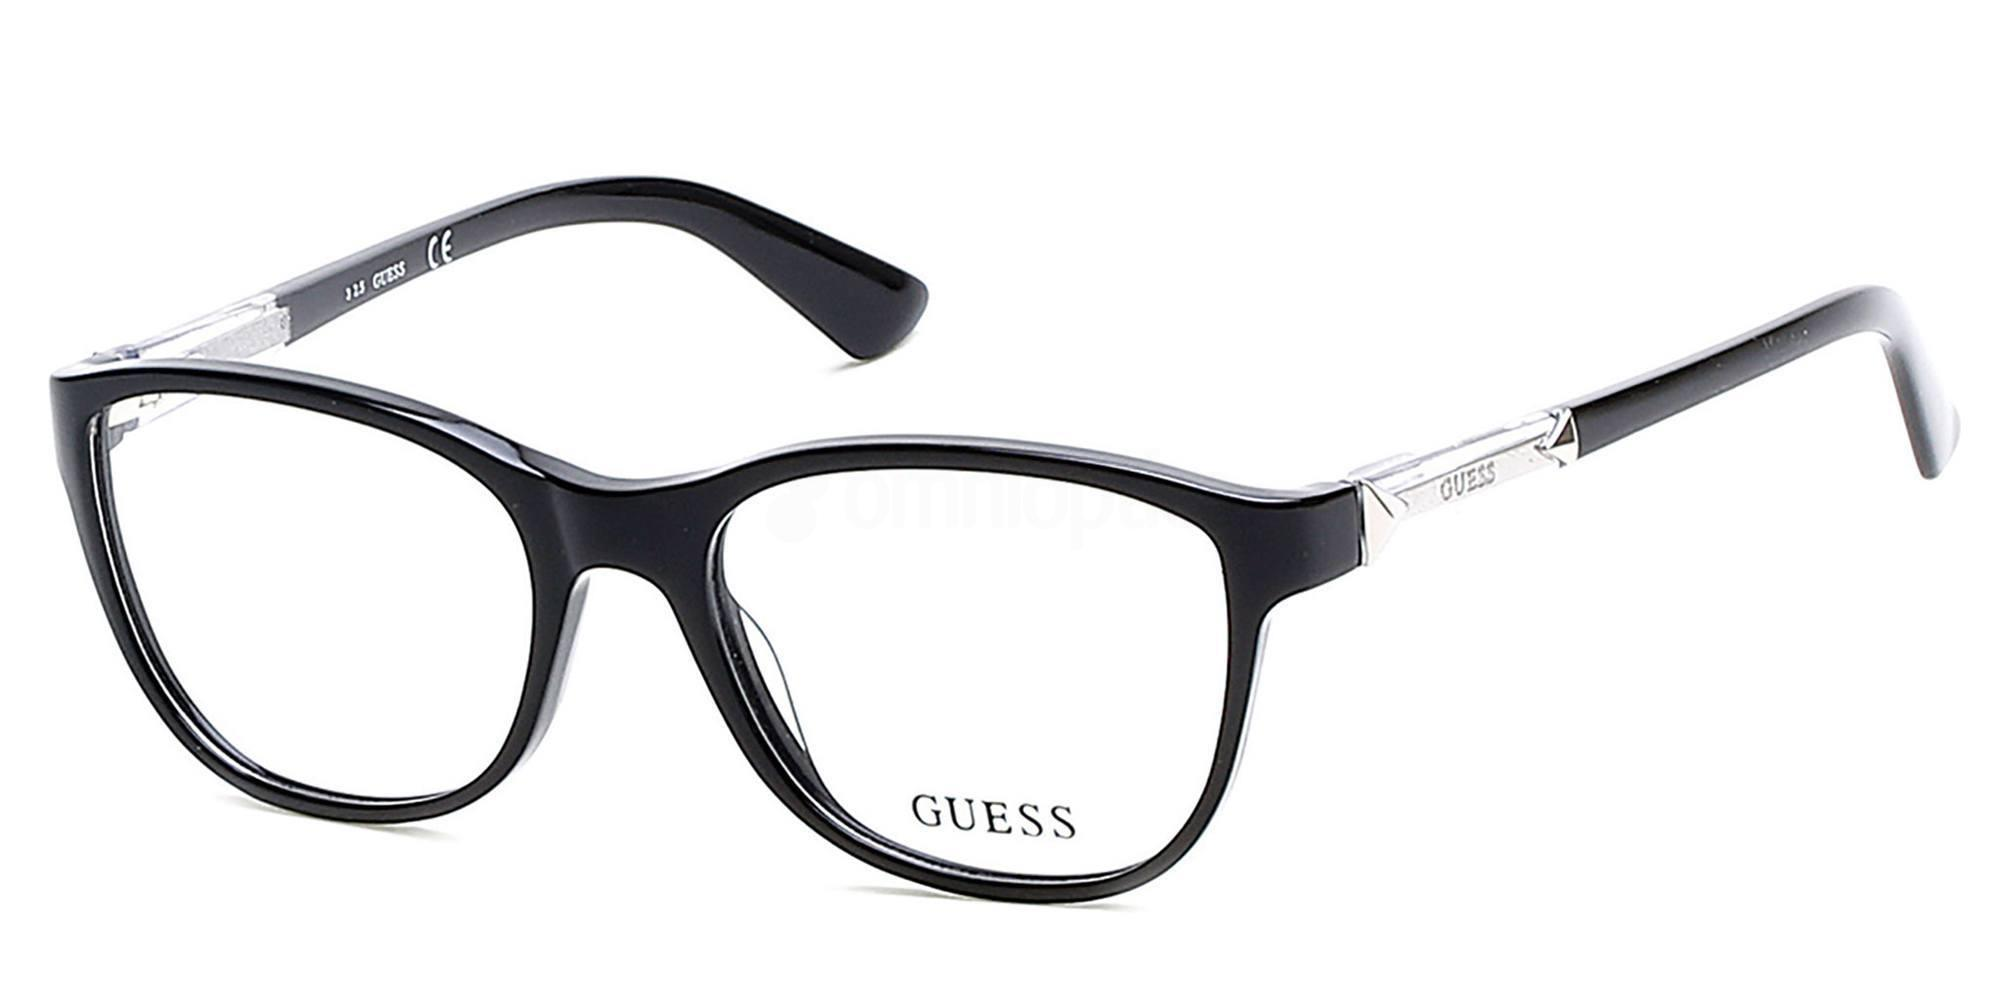 001 GU2562 Glasses, Guess